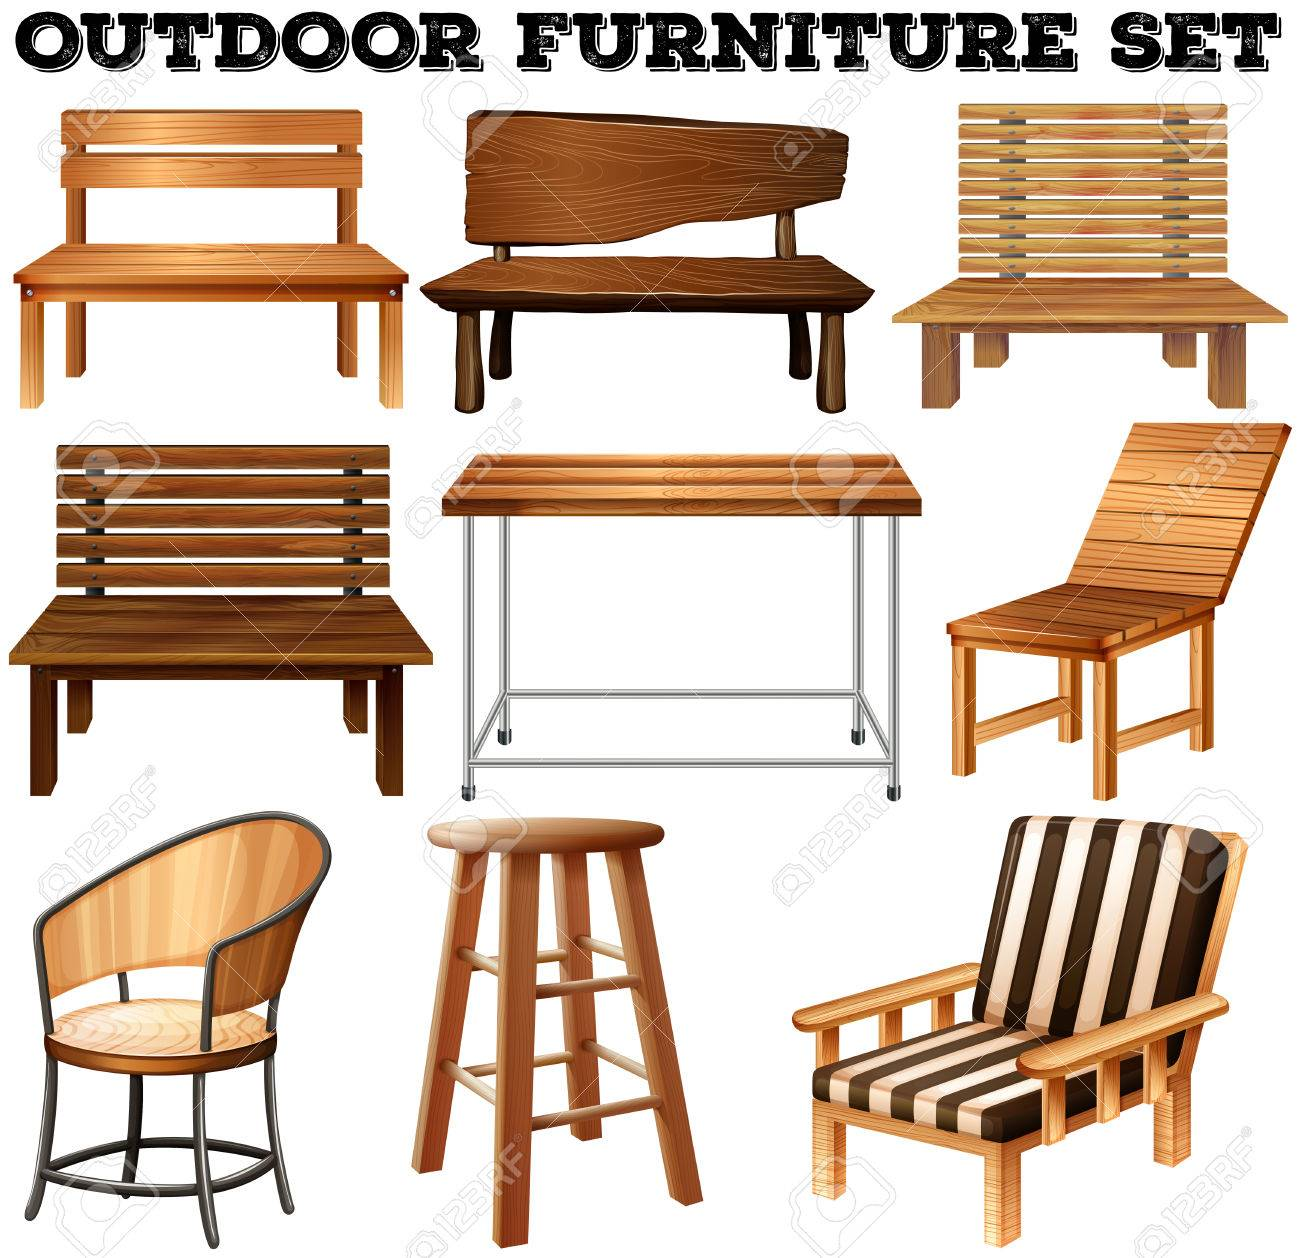 Outdoor Wooden Furniture Set Illustration Royalty Free Cliparts ...